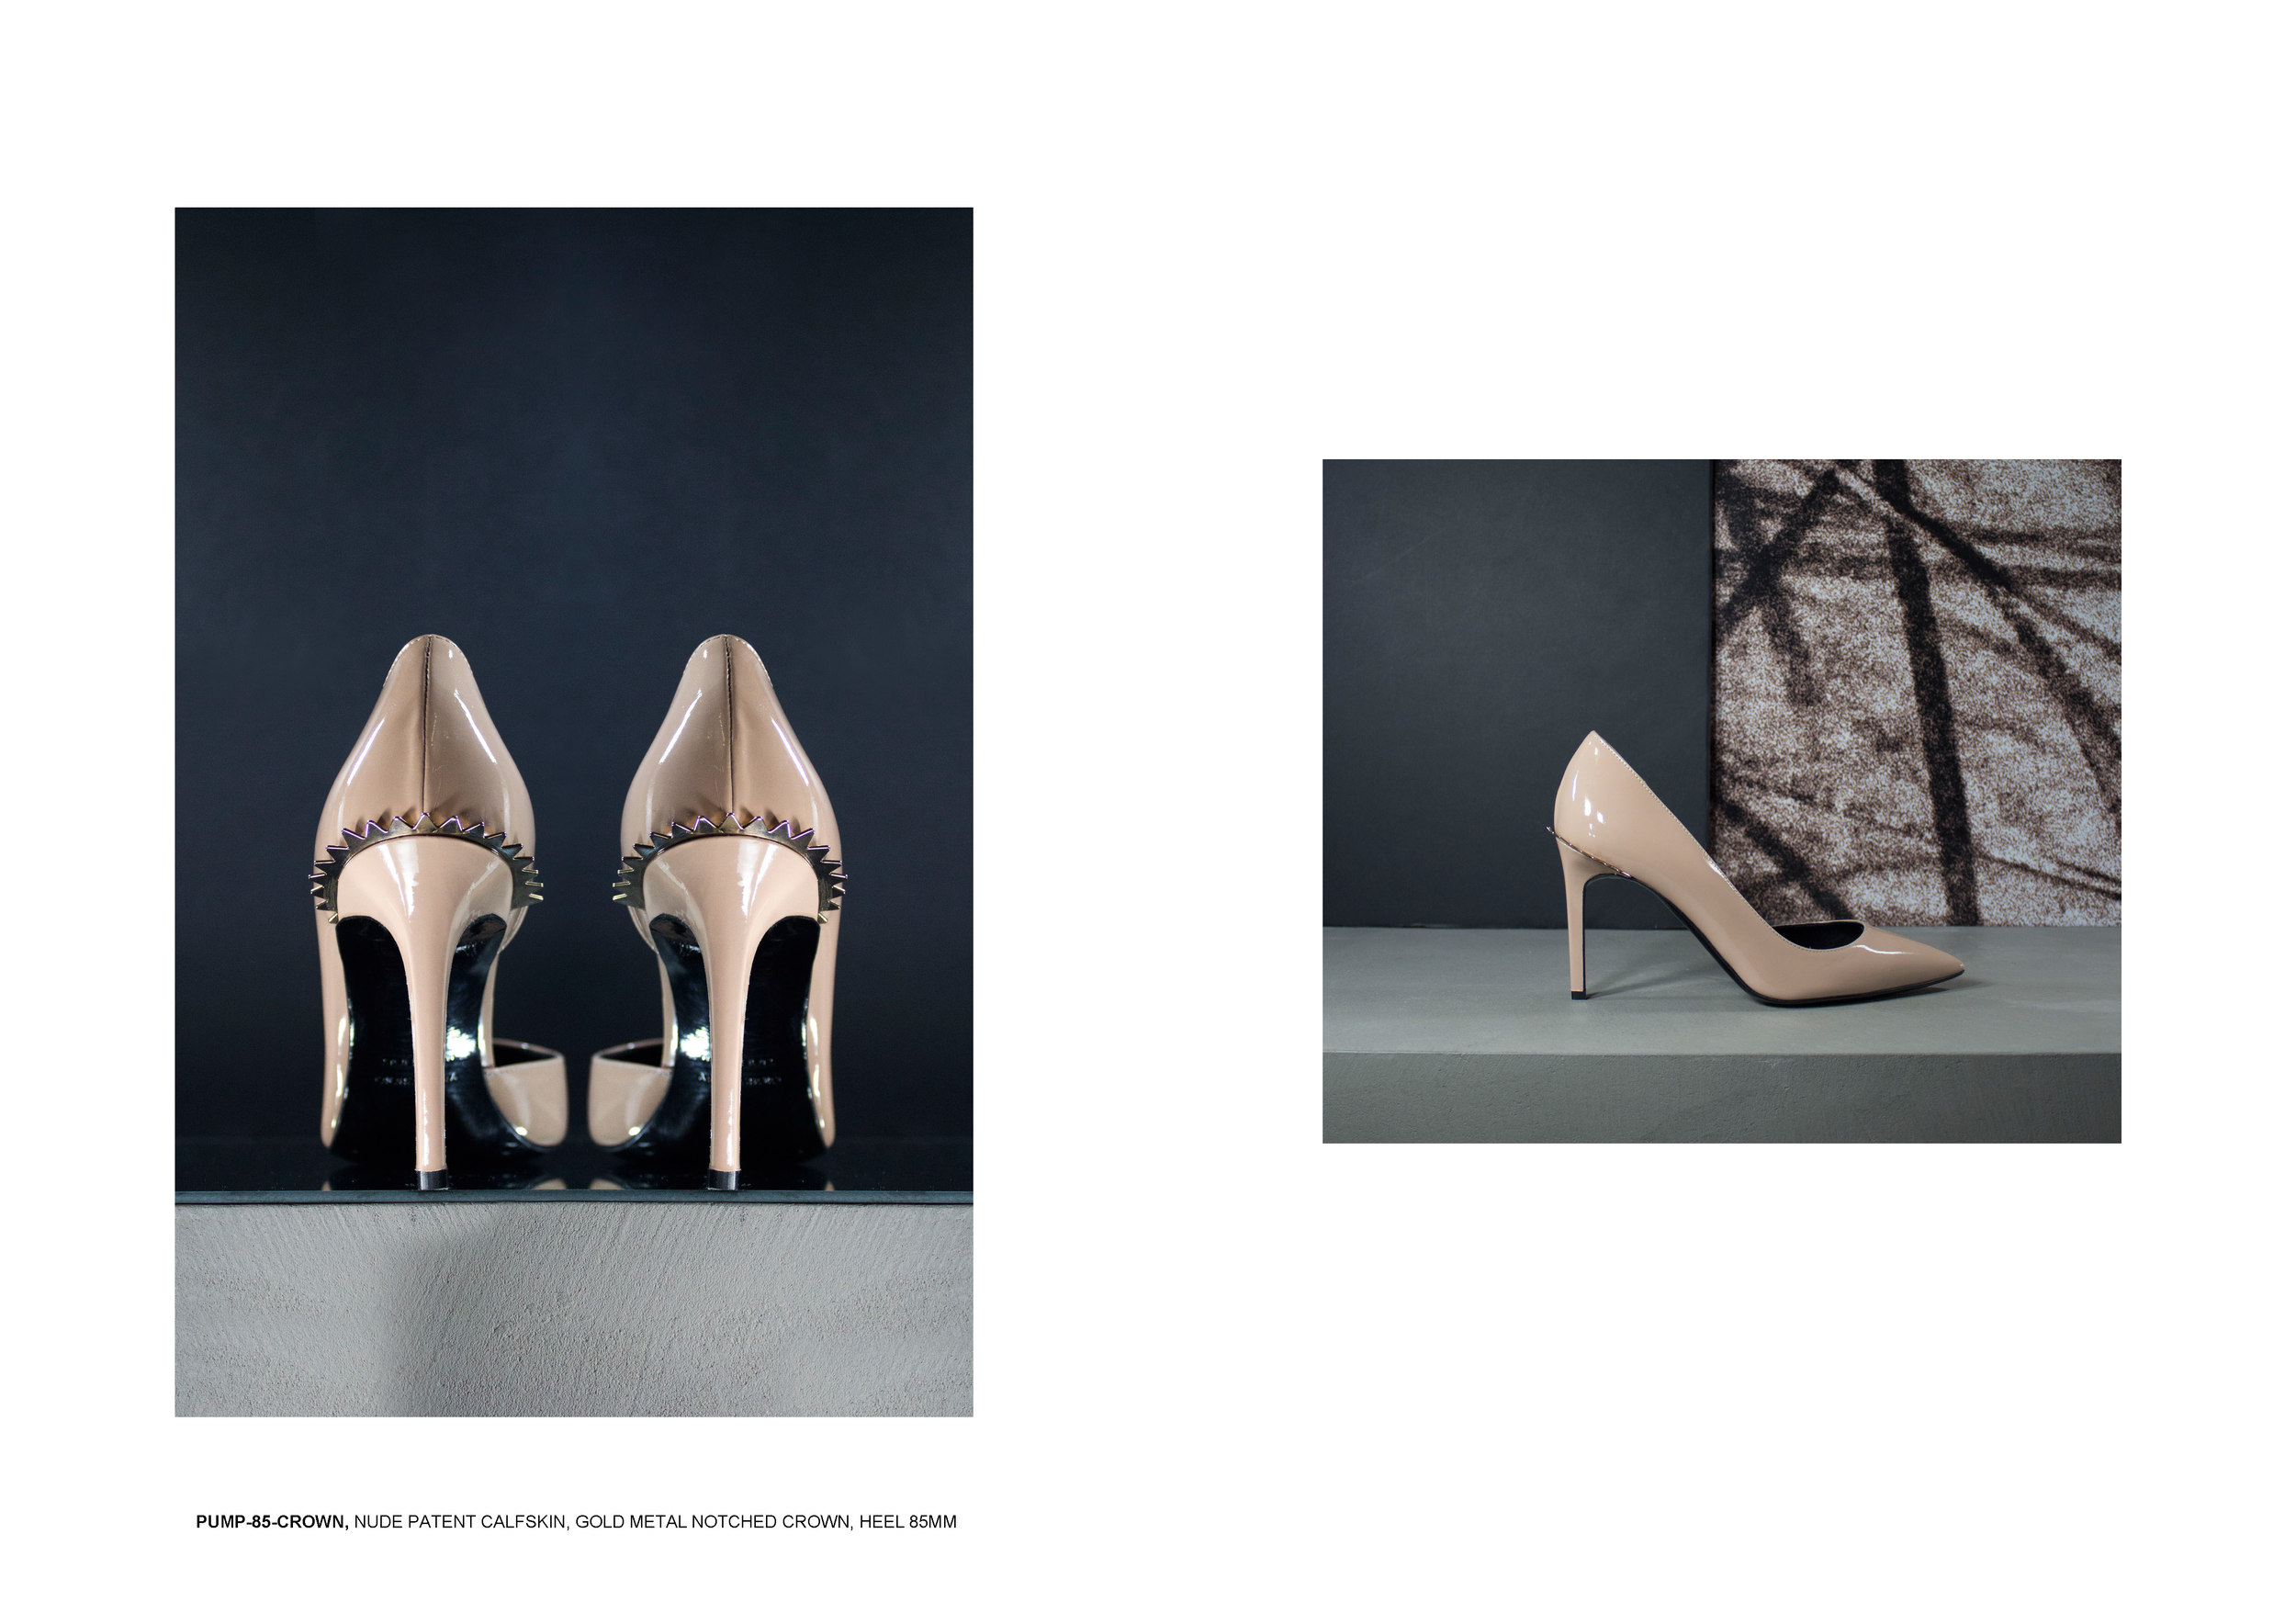 eugenericonneaus_main-aw15-16-high-w_Page_23.jpg